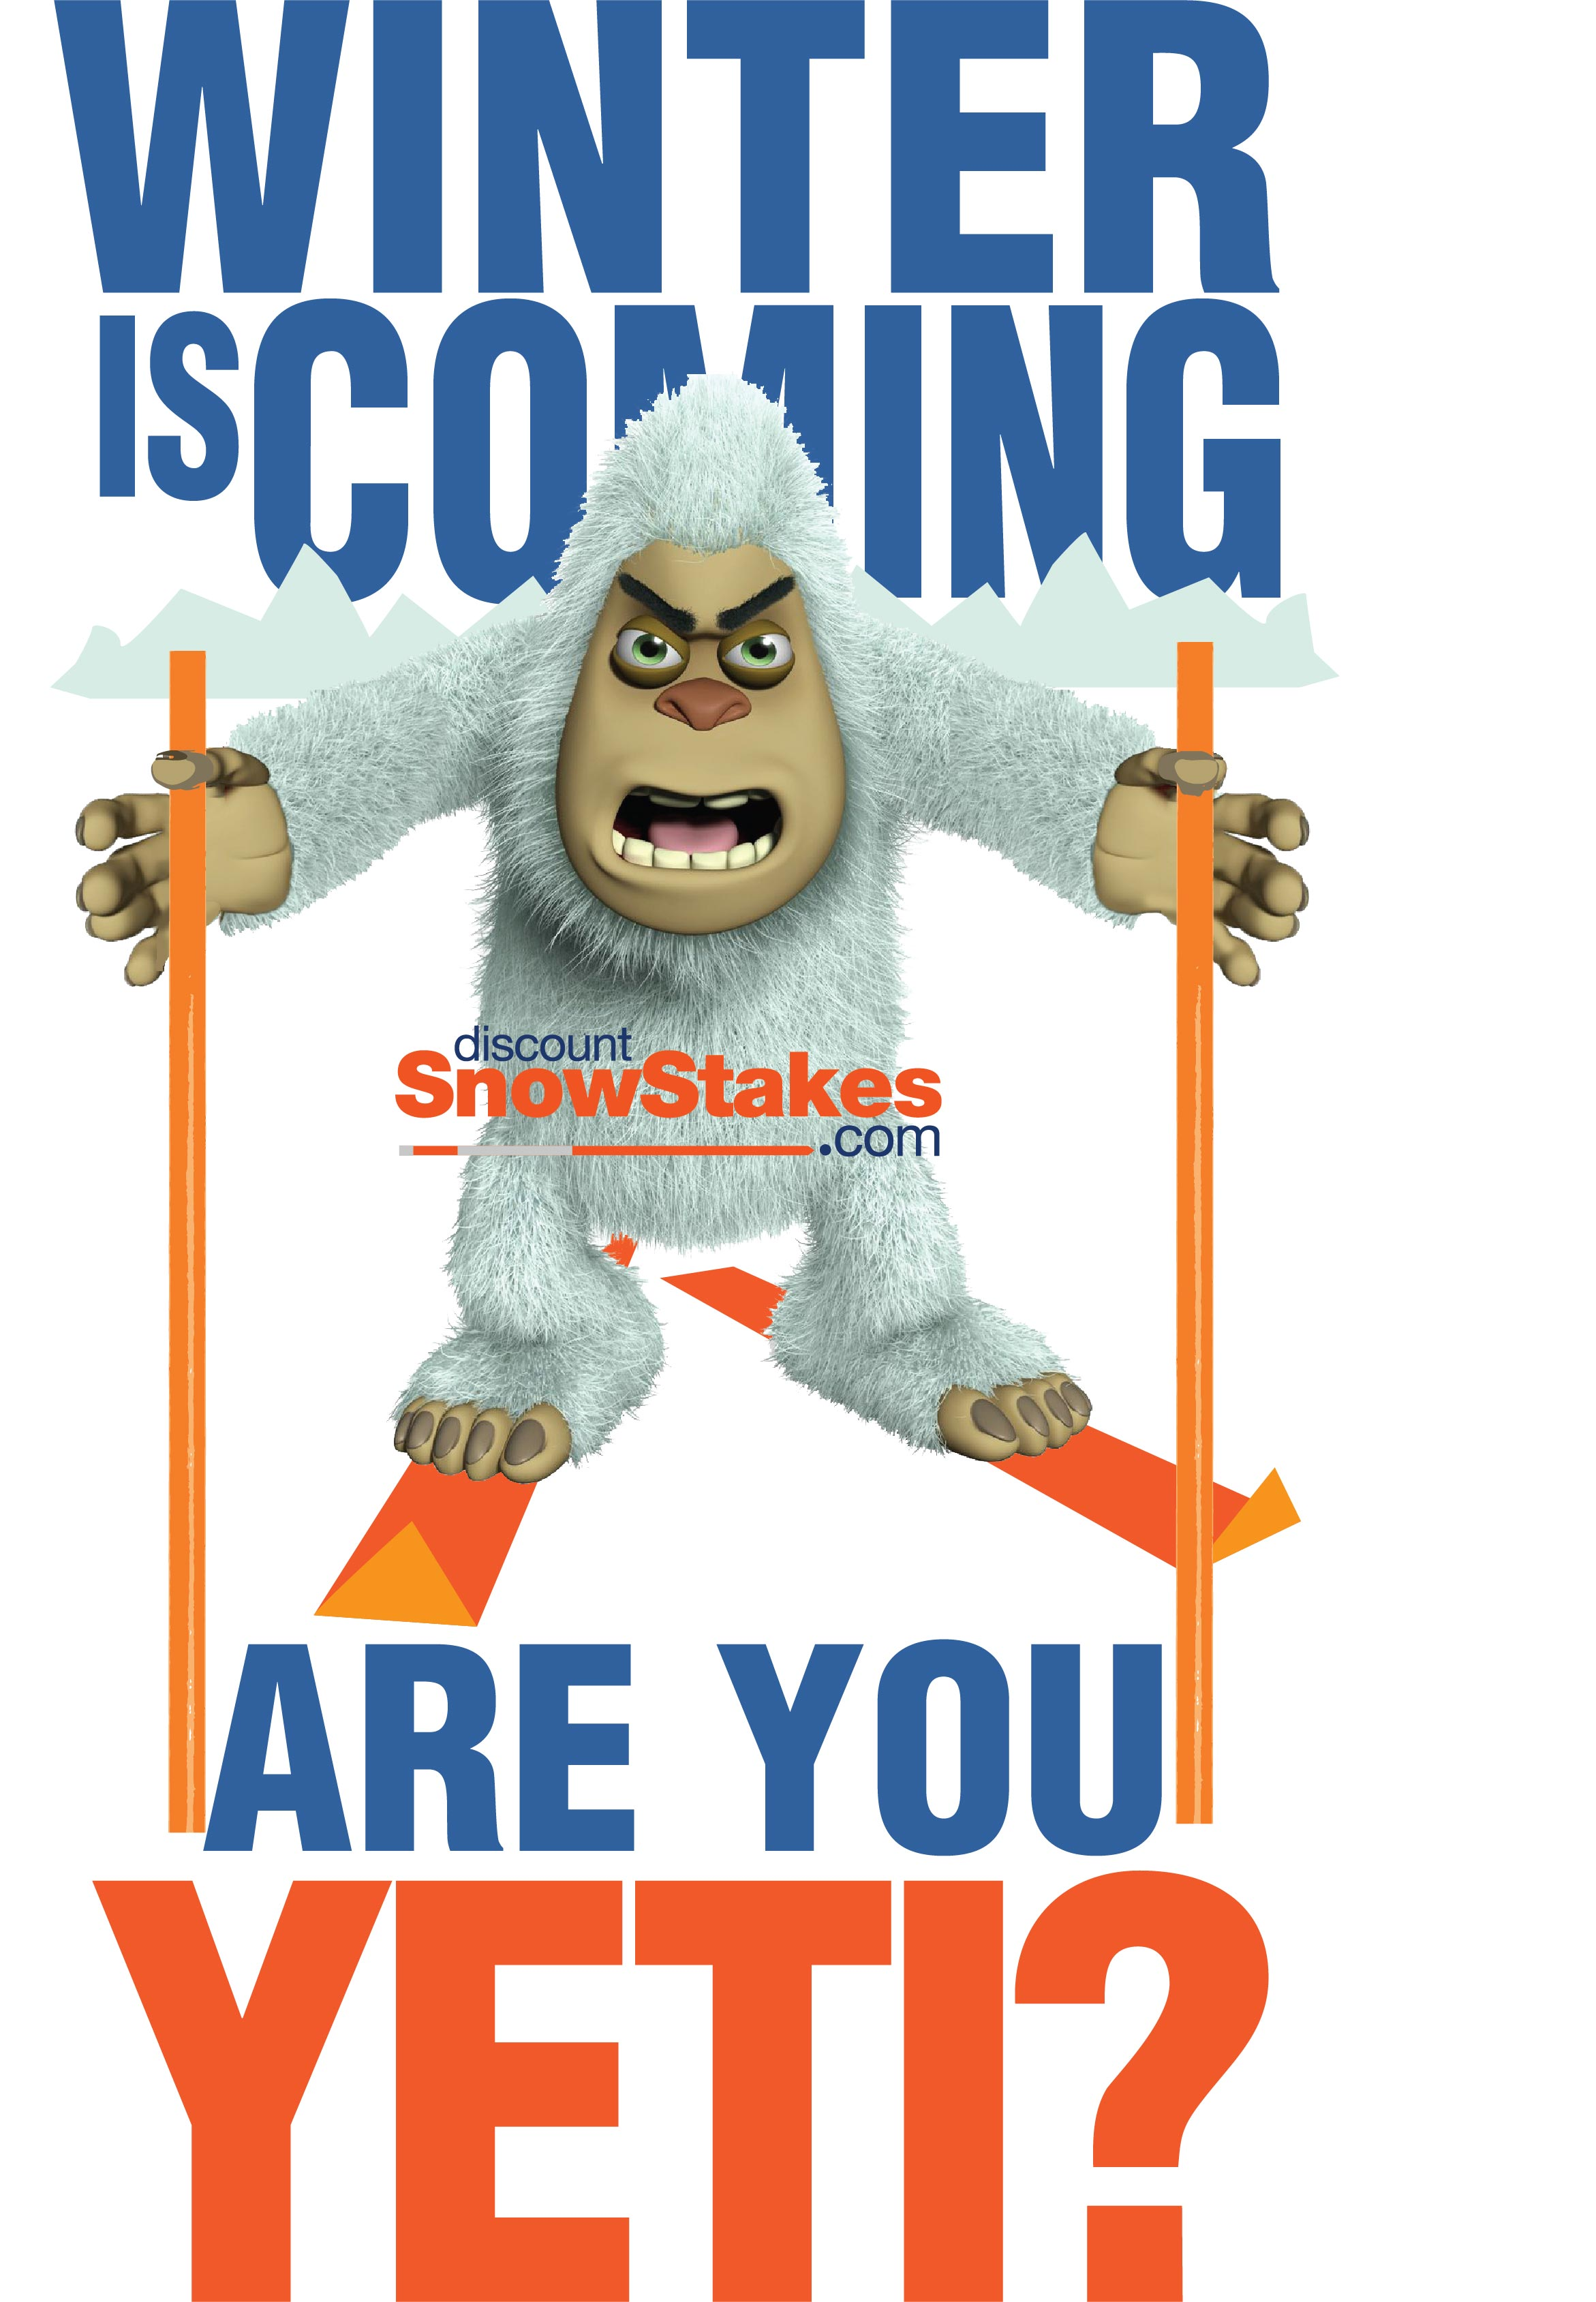 5af359f2c1d2 It's FREE Hoodie Time From Discount Snow Stakes - Snow Stake City